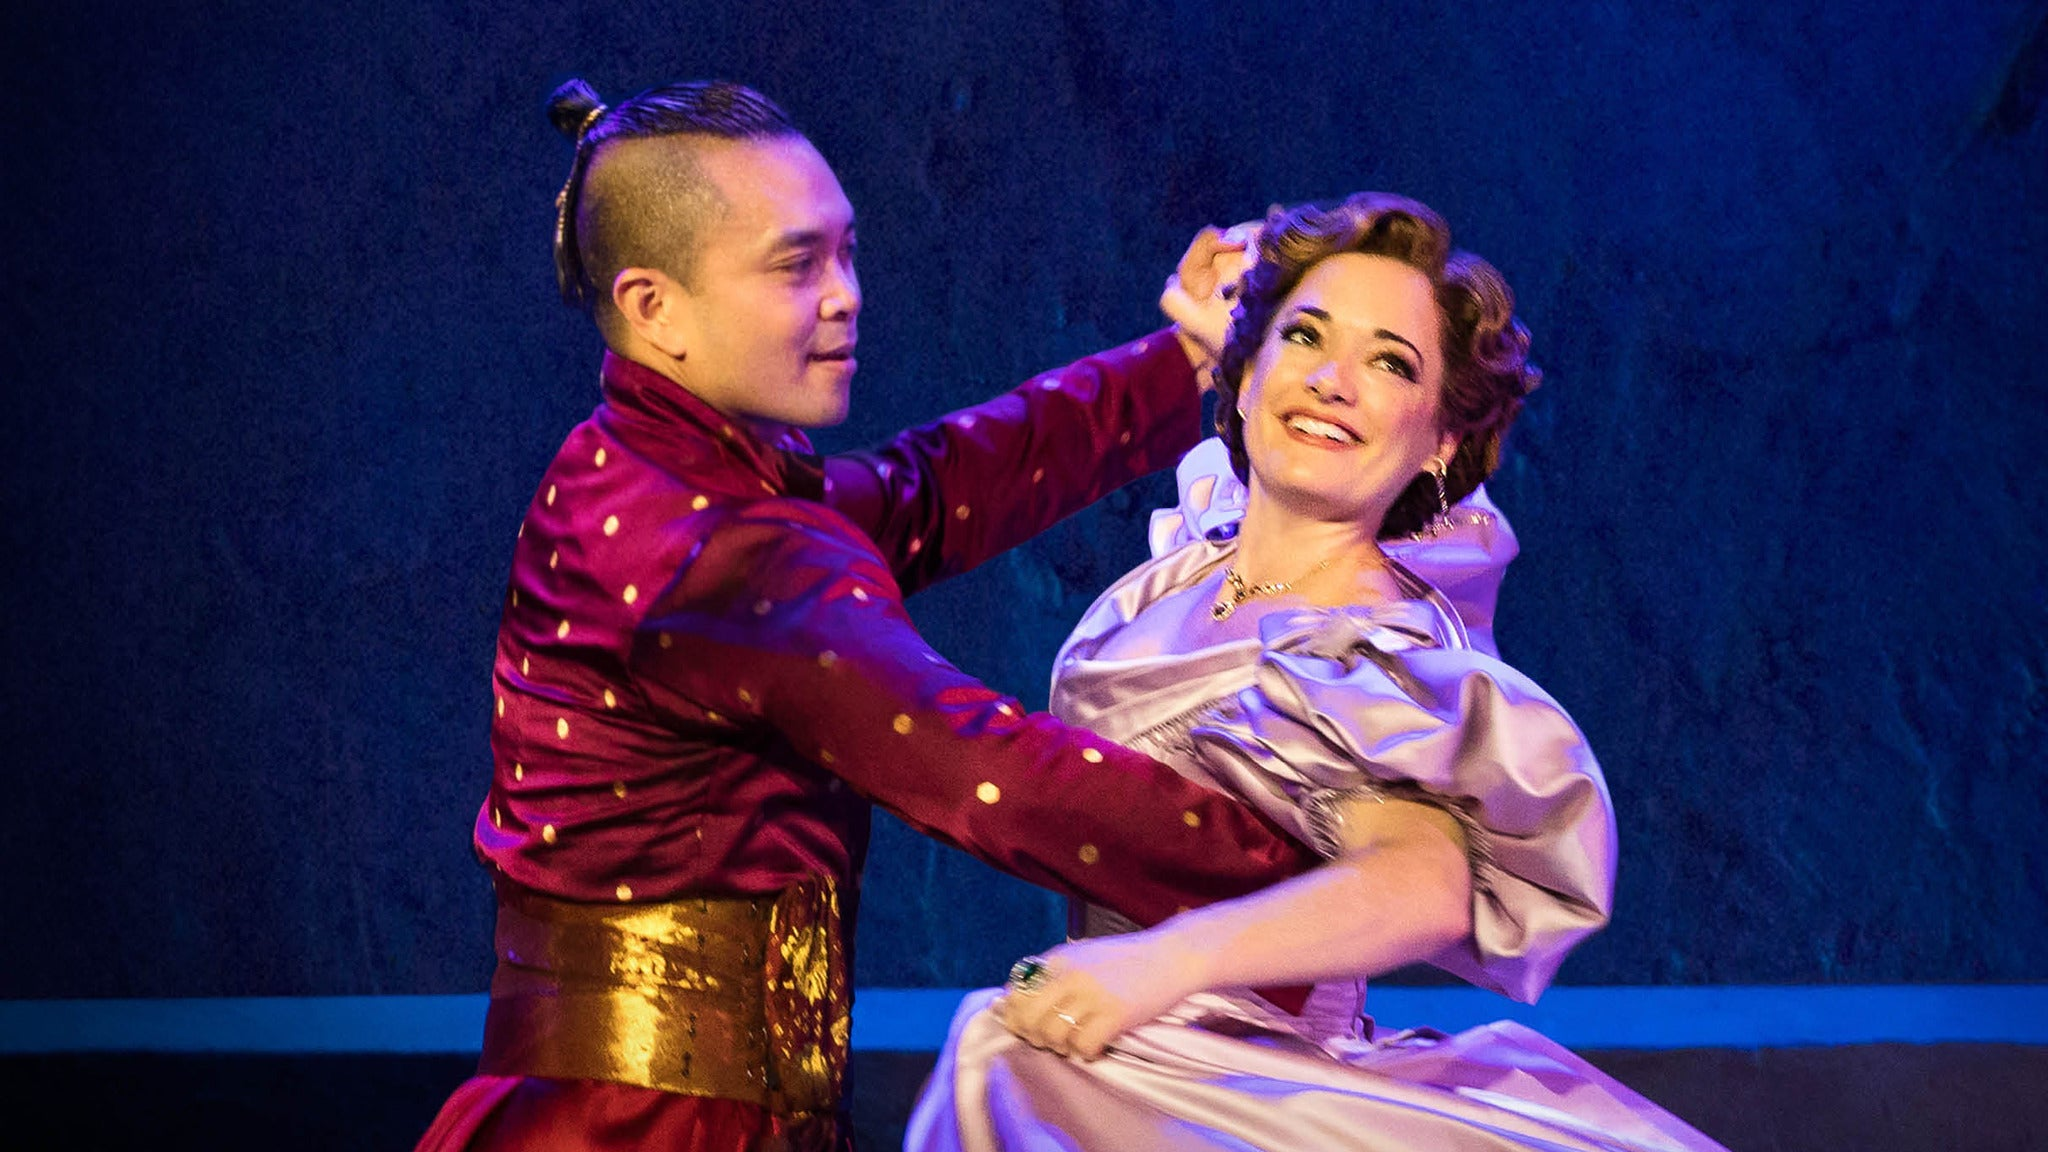 The King And I at Washington Pavilion of Arts & Science